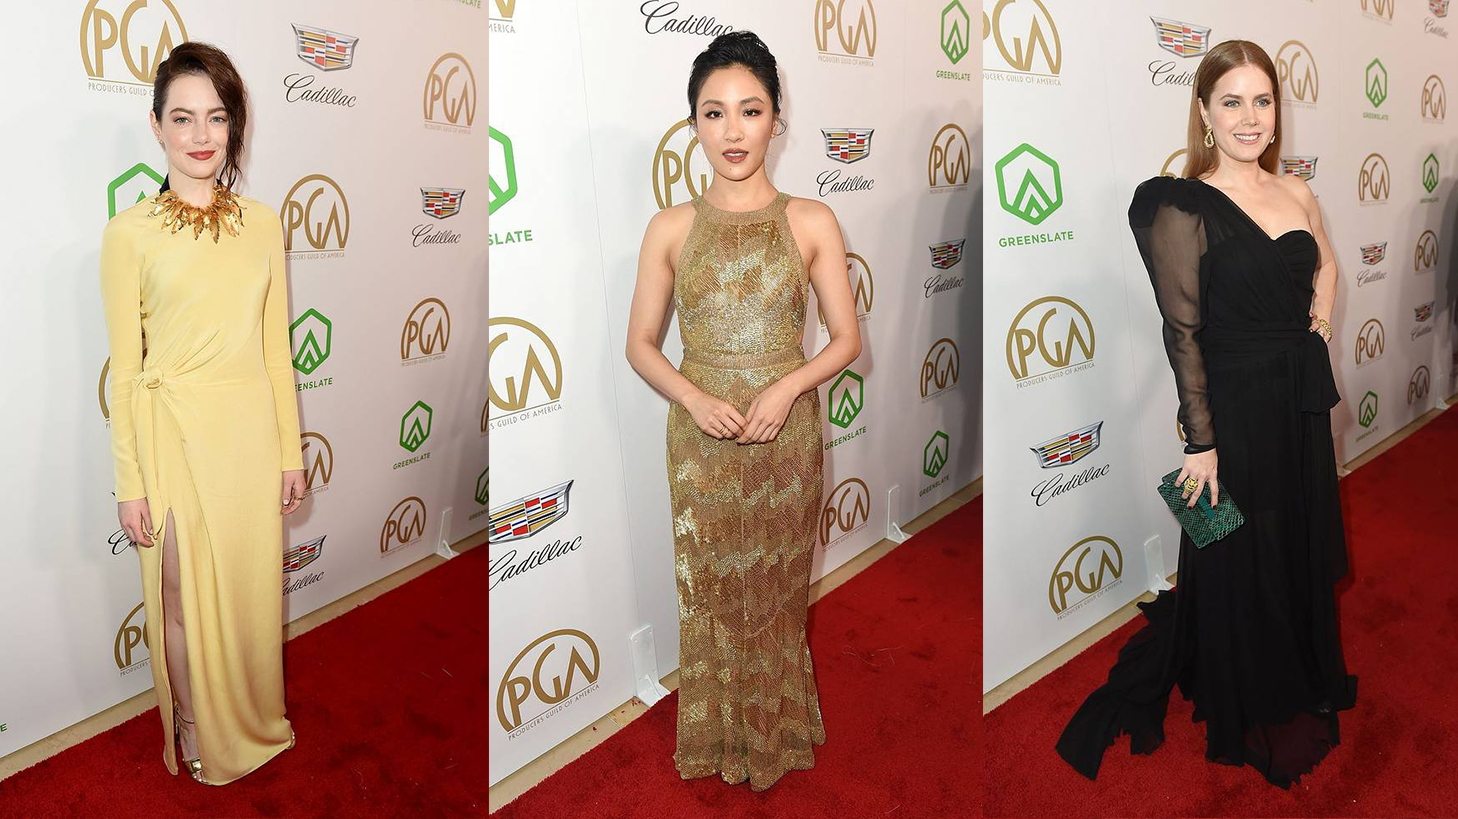 2019 Producers Guild Awards